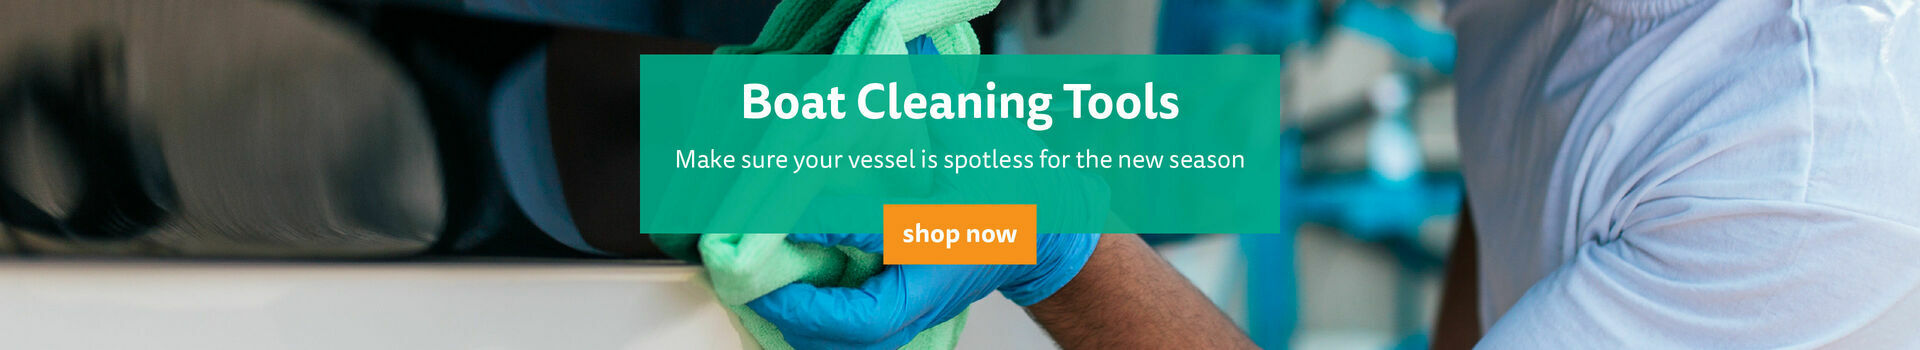 Shop Our Boat Cleaning Tools